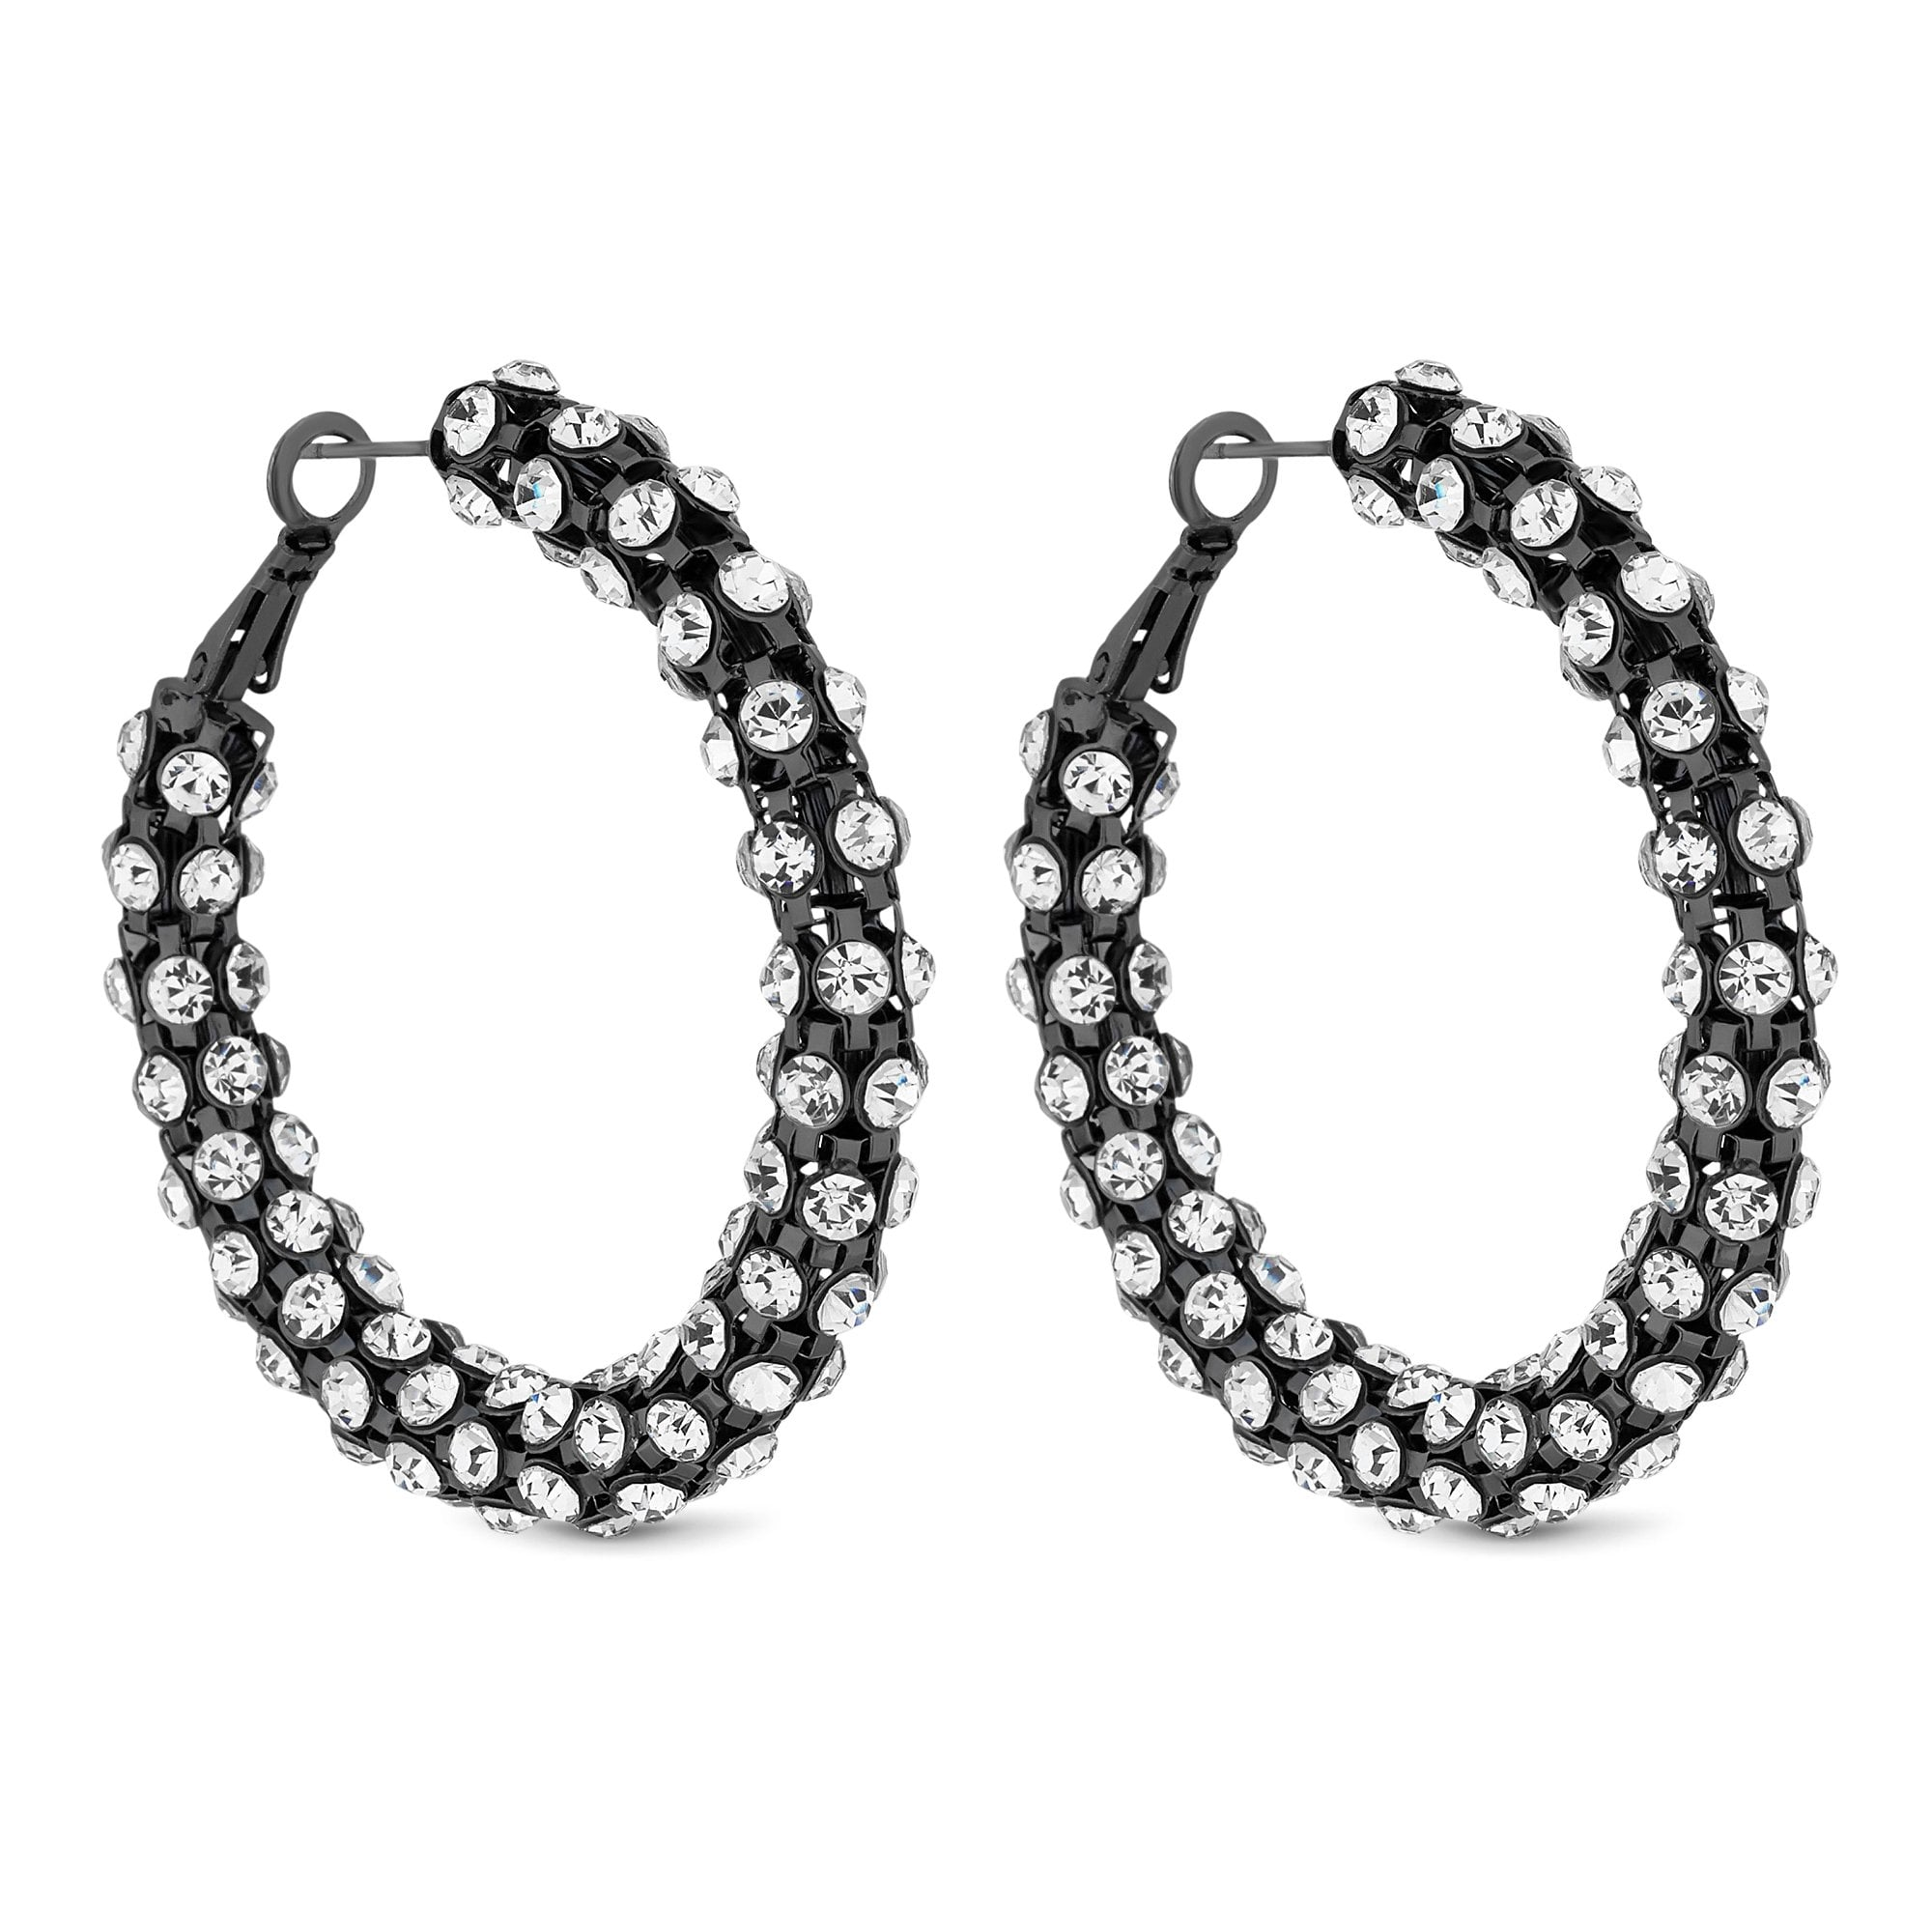 Mood By Jon Richard Black Crystal Statement Hoop Earring